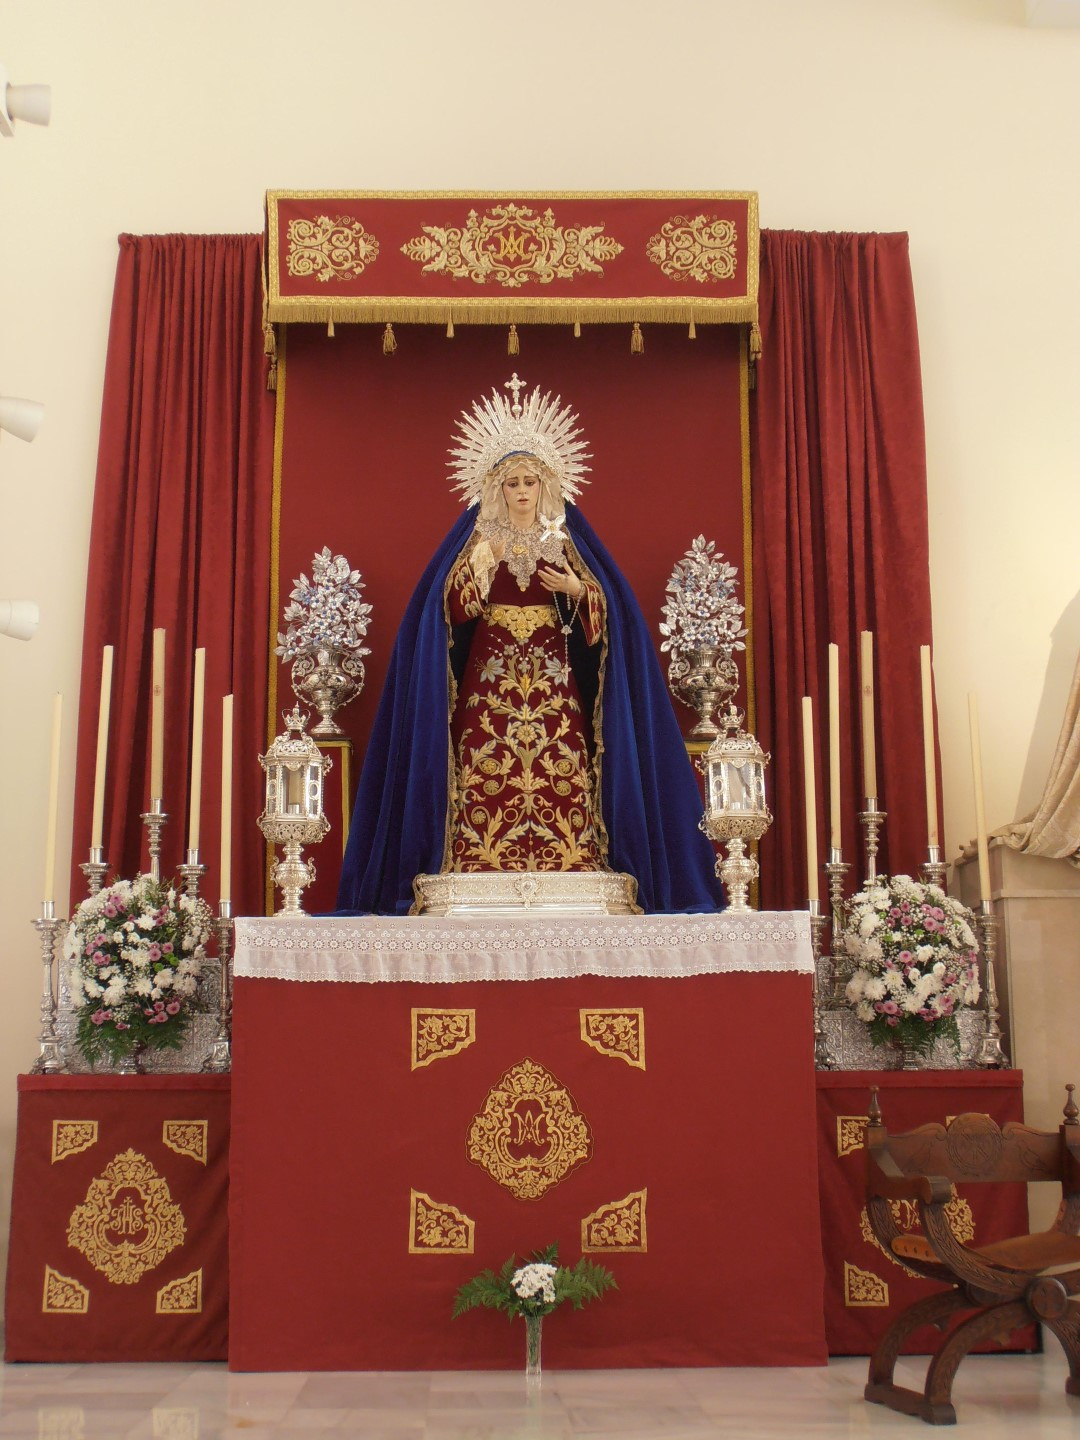 Triduo Virgen del Pilar 2016